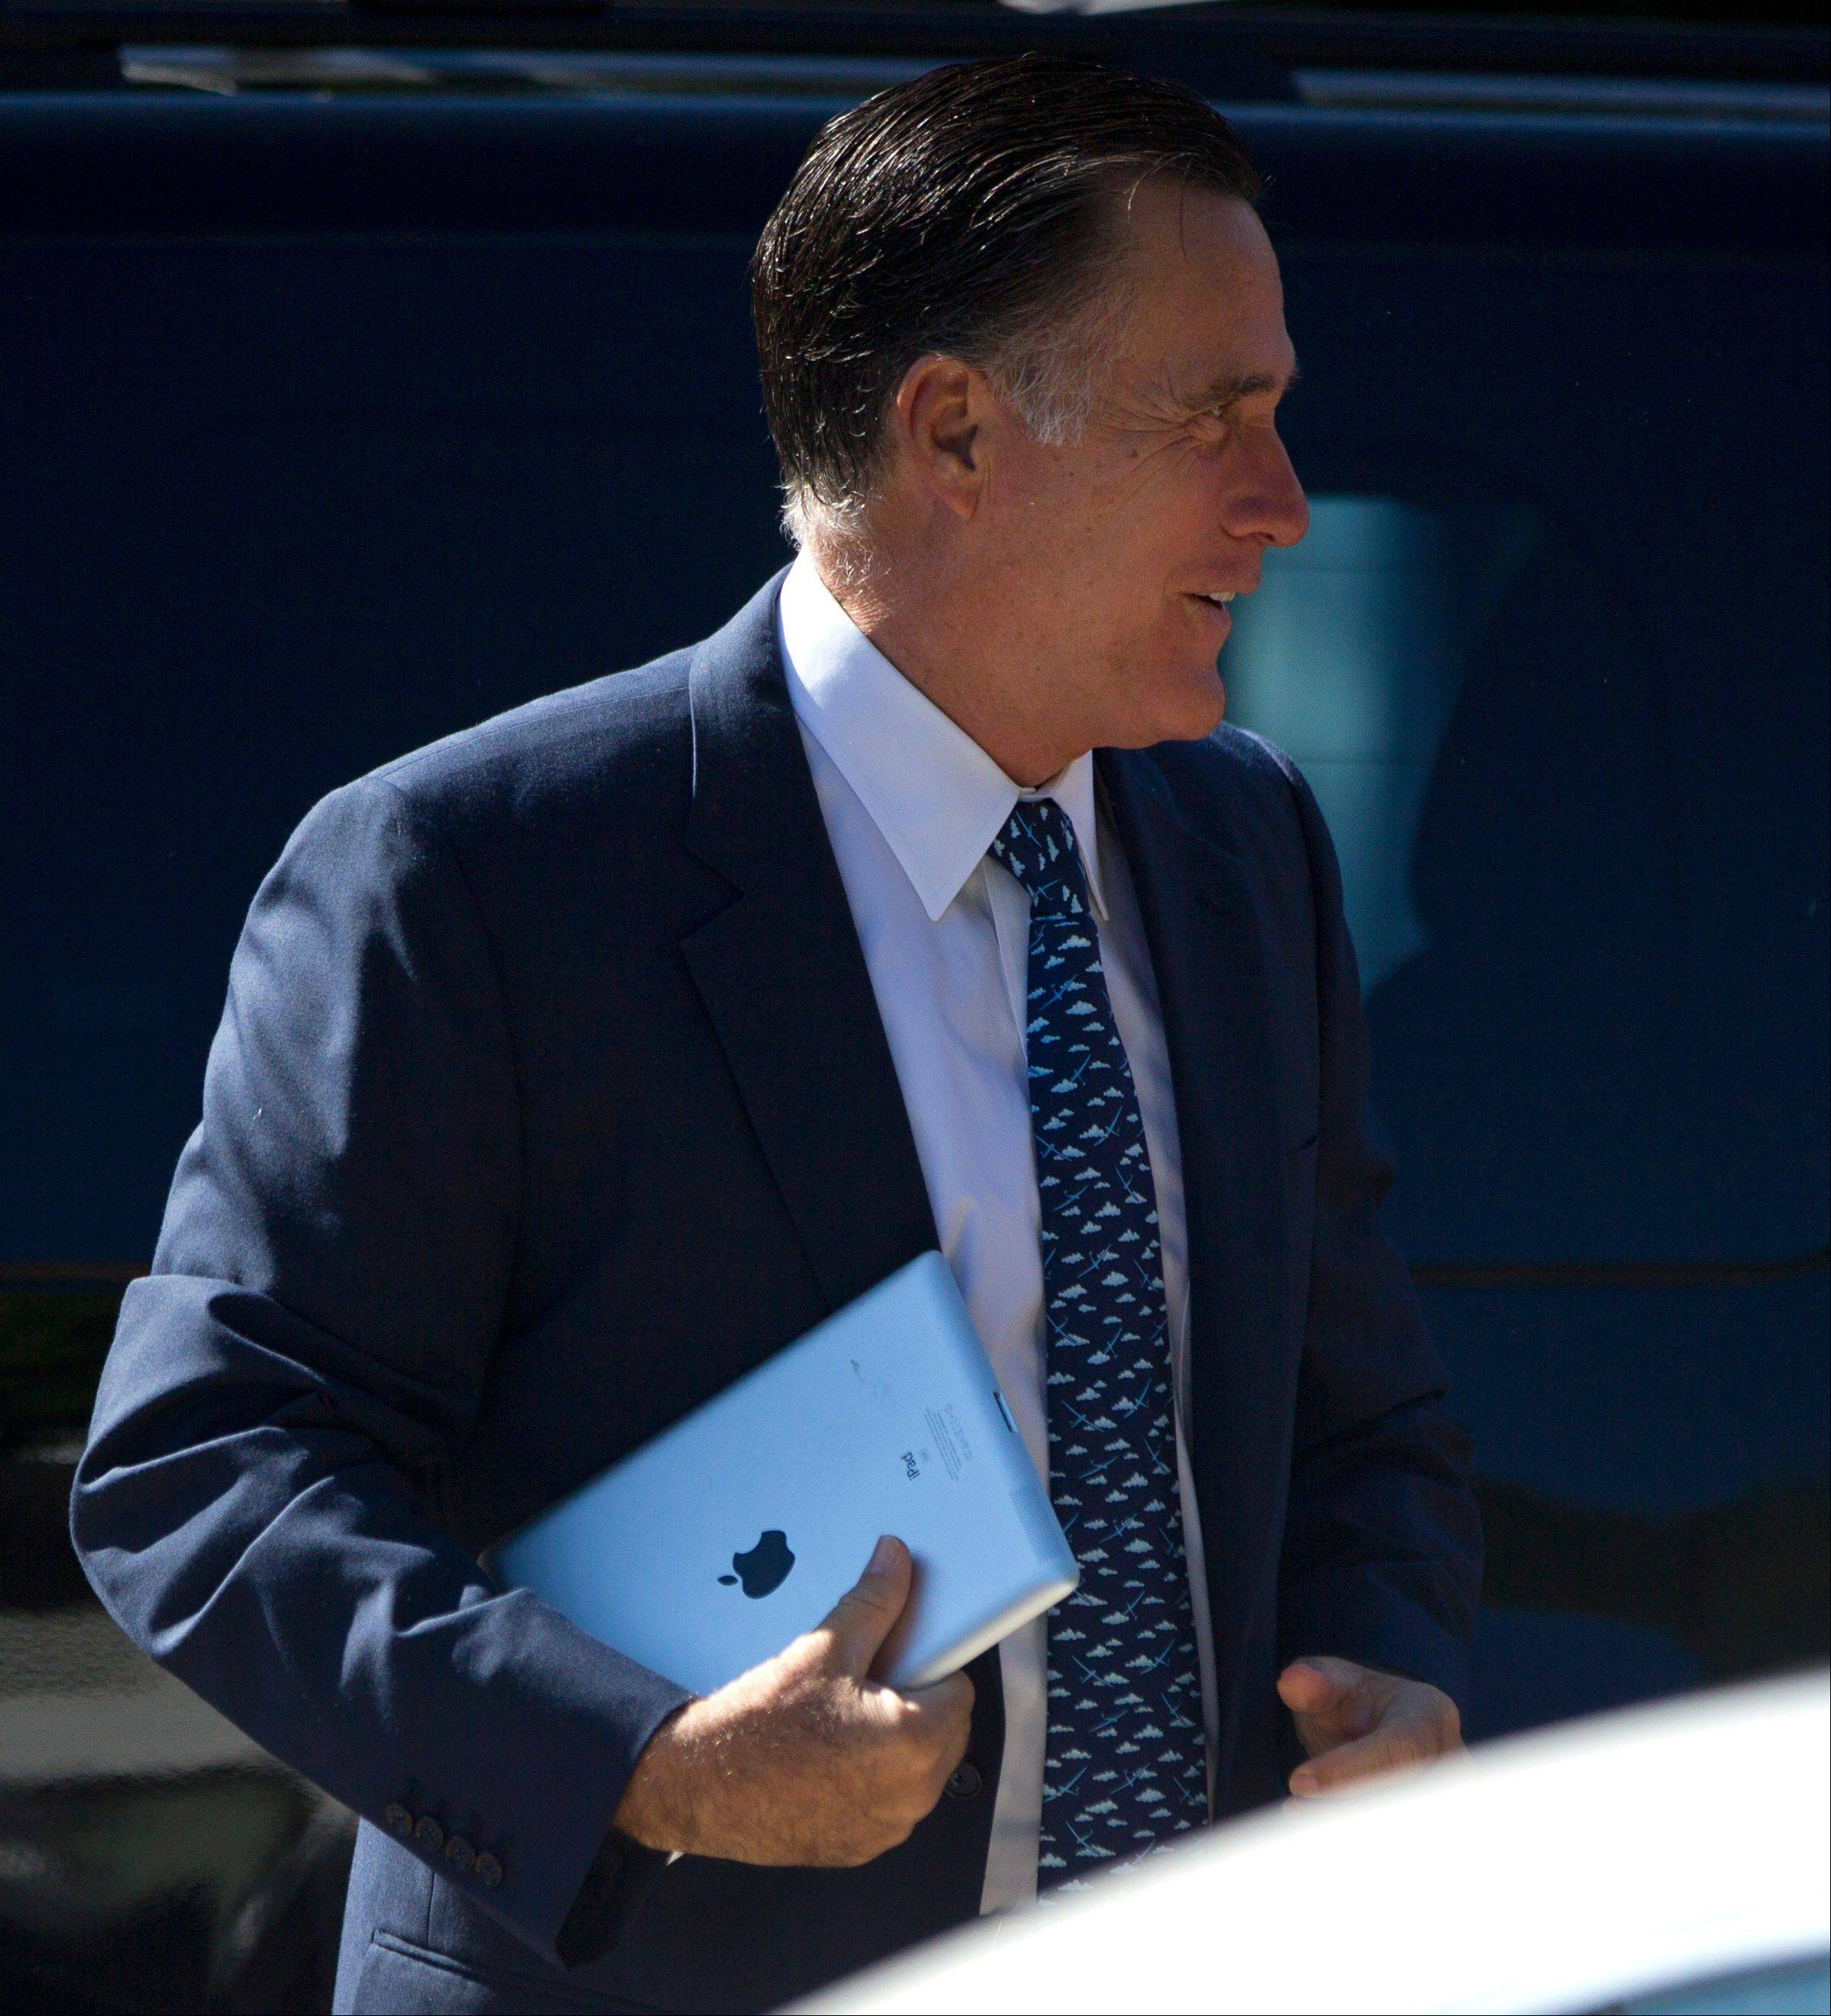 Republican presidential candidate, former Massachusetts Gov. Mitt Romney, carries an iPad as he walks into the Church of Jesus Christ of Latter-day Saints on Sunday in Wolefboro, N.H.